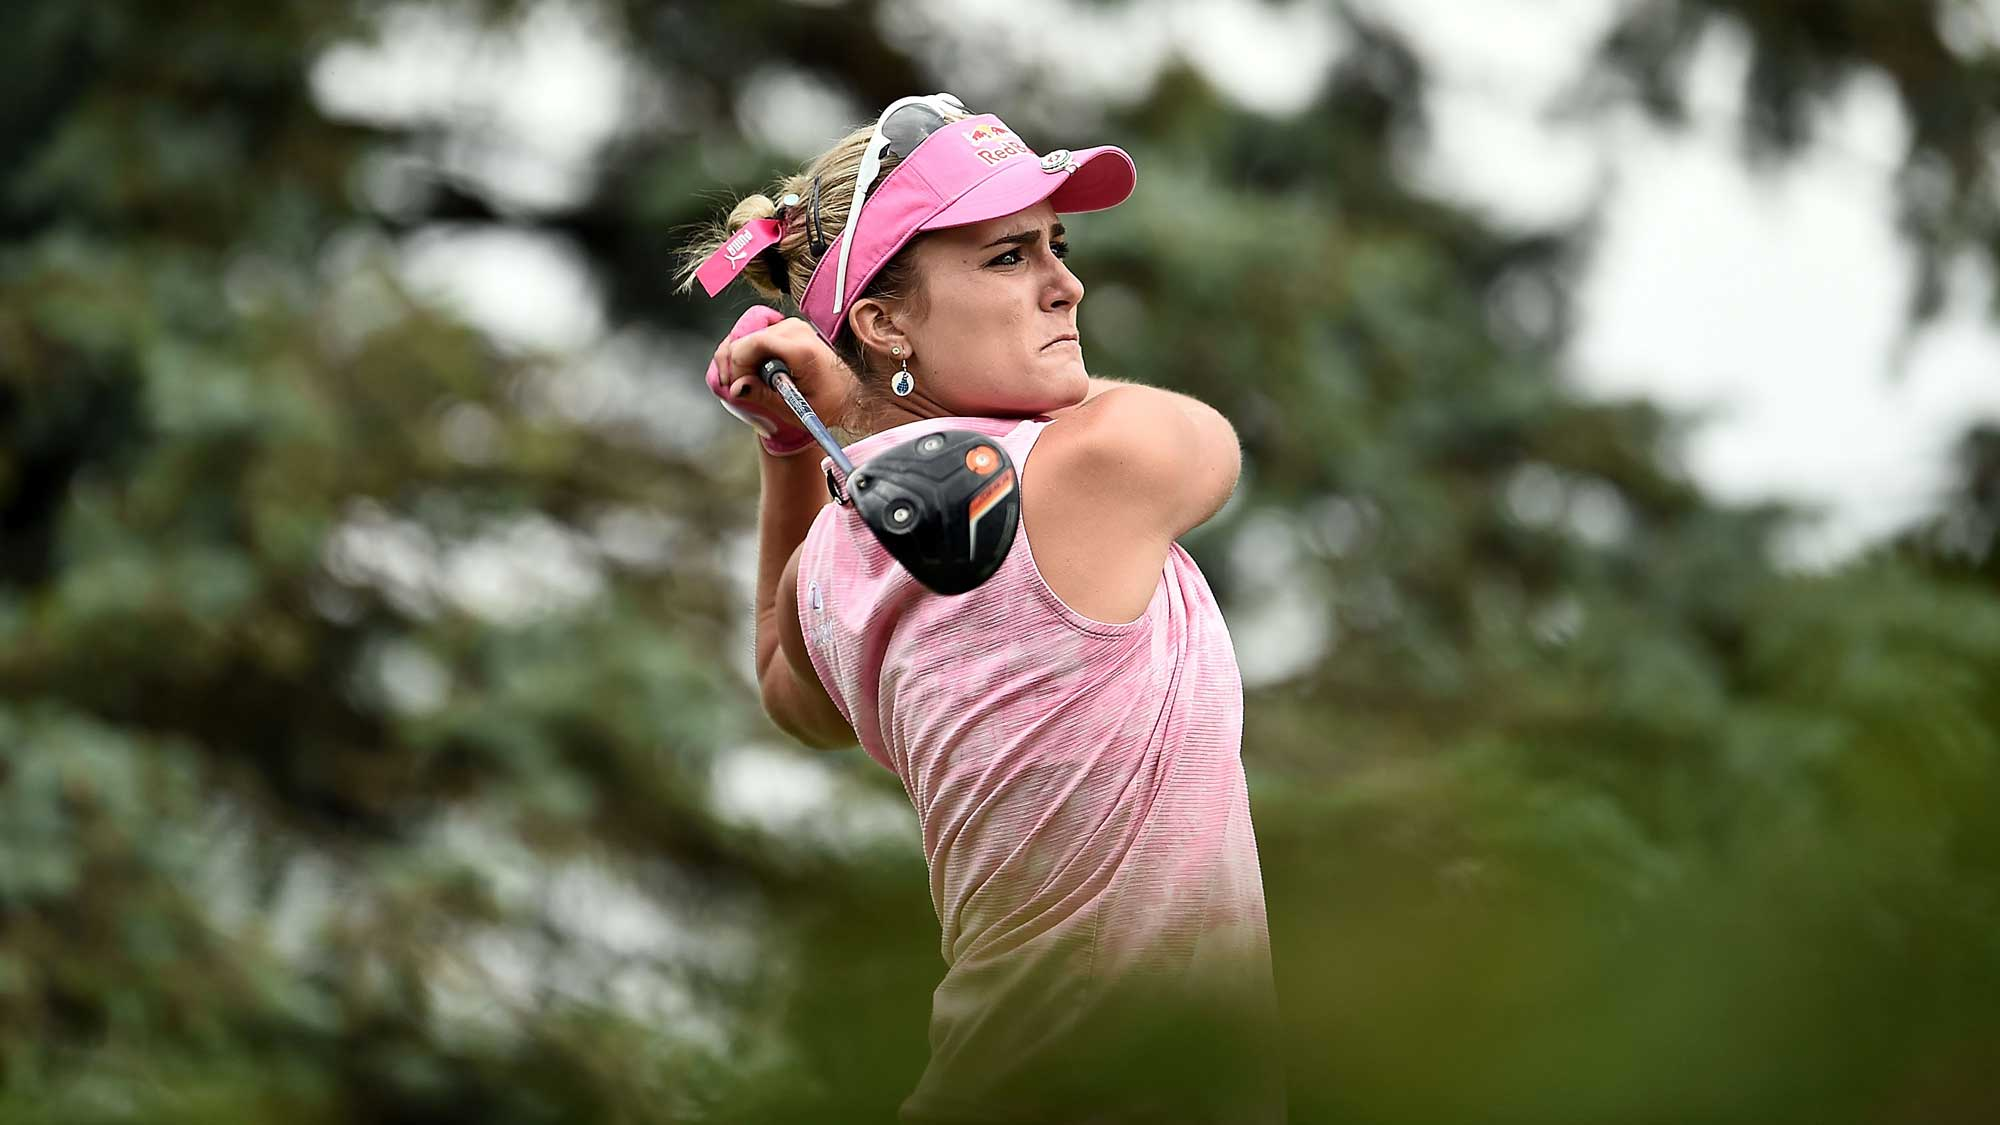 Lexi Thompson hits her tee shot on the third hole during the third round of the Meijer LPGA Classic